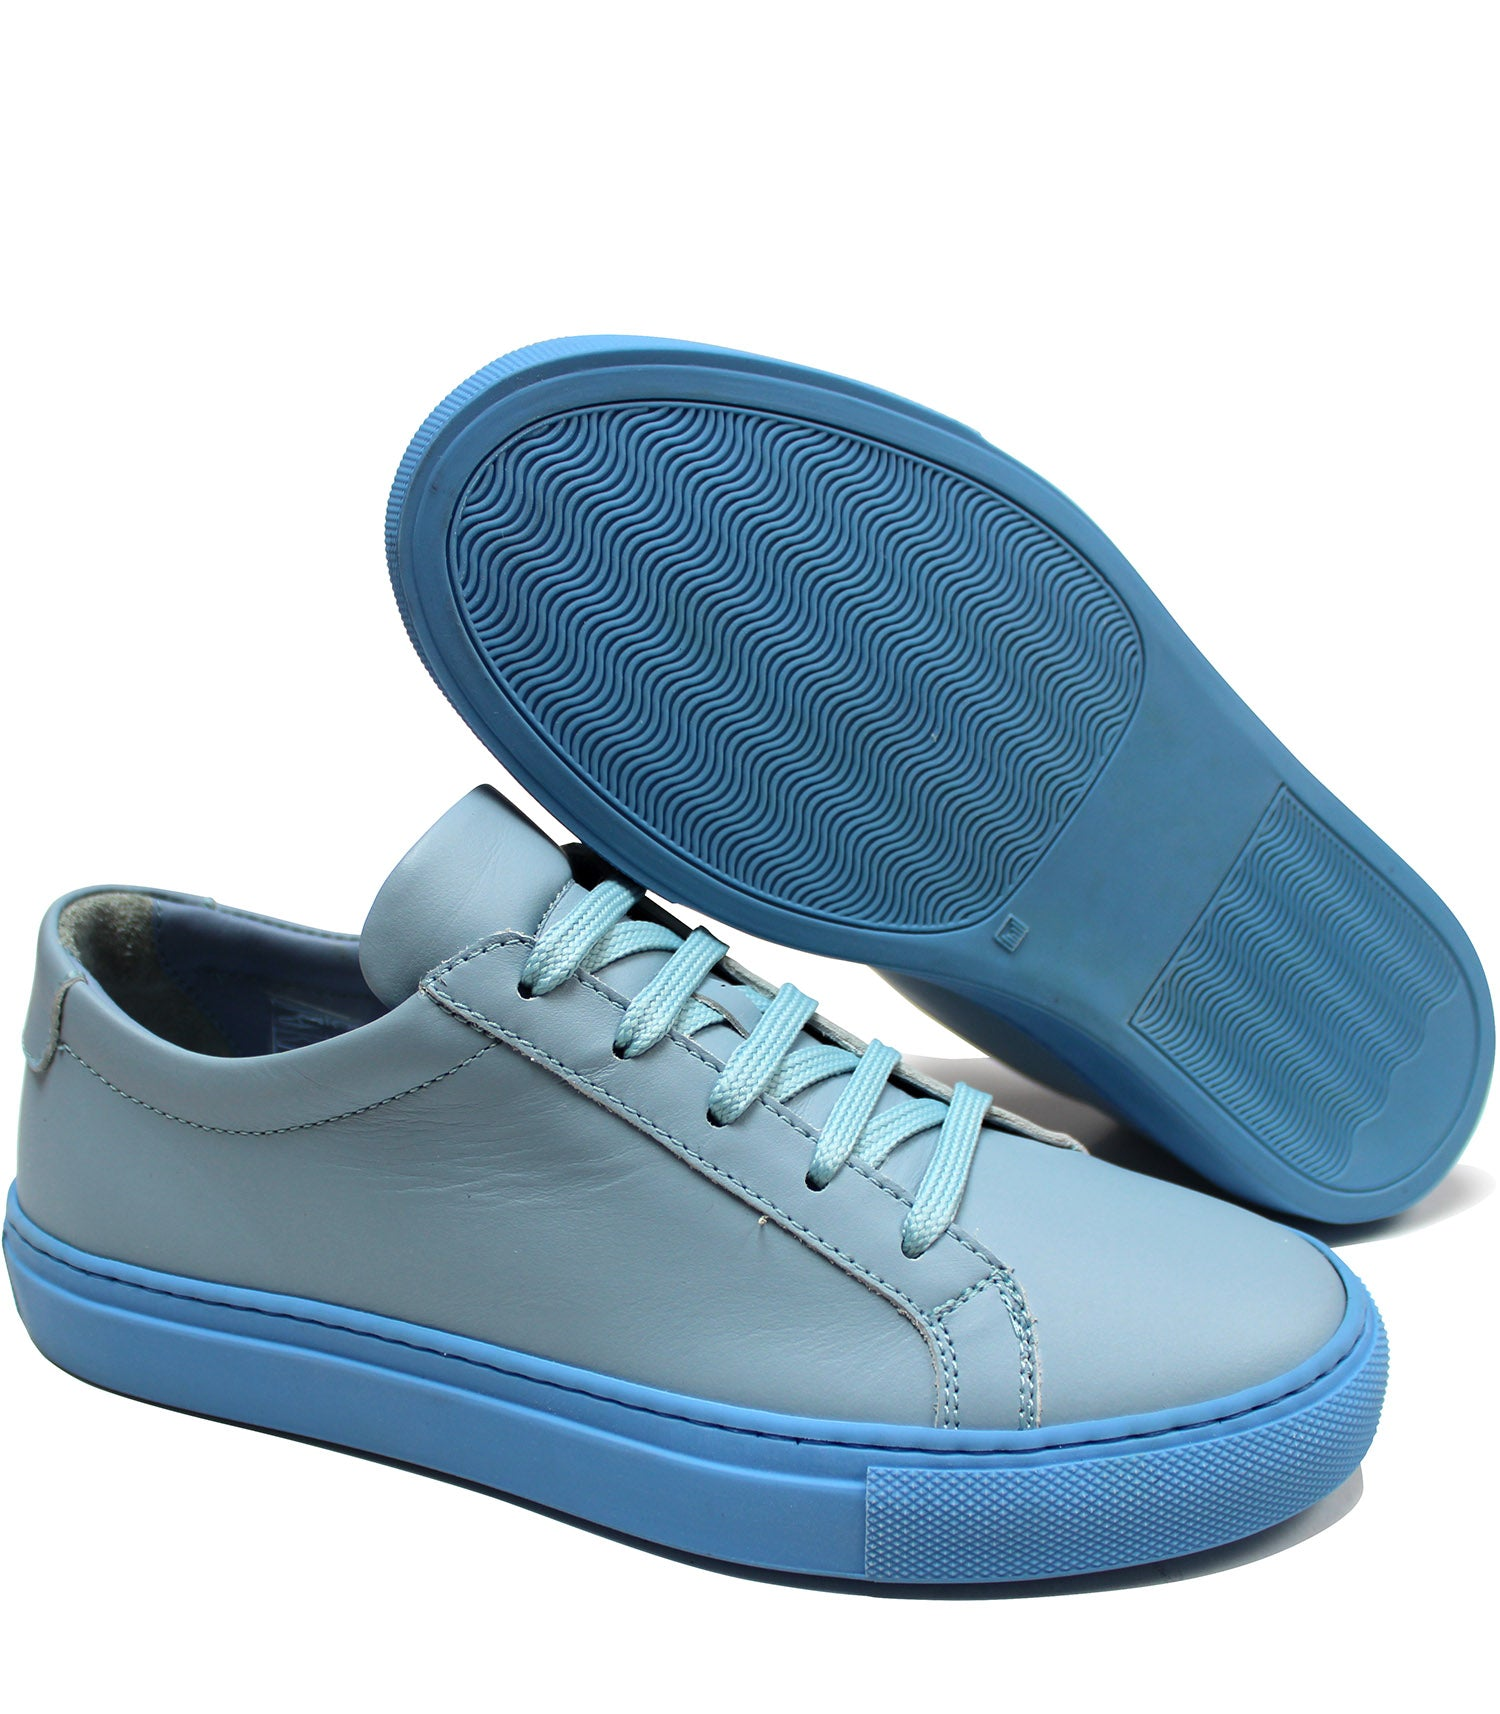 Pale blue sneakers – Gallucci Shoes